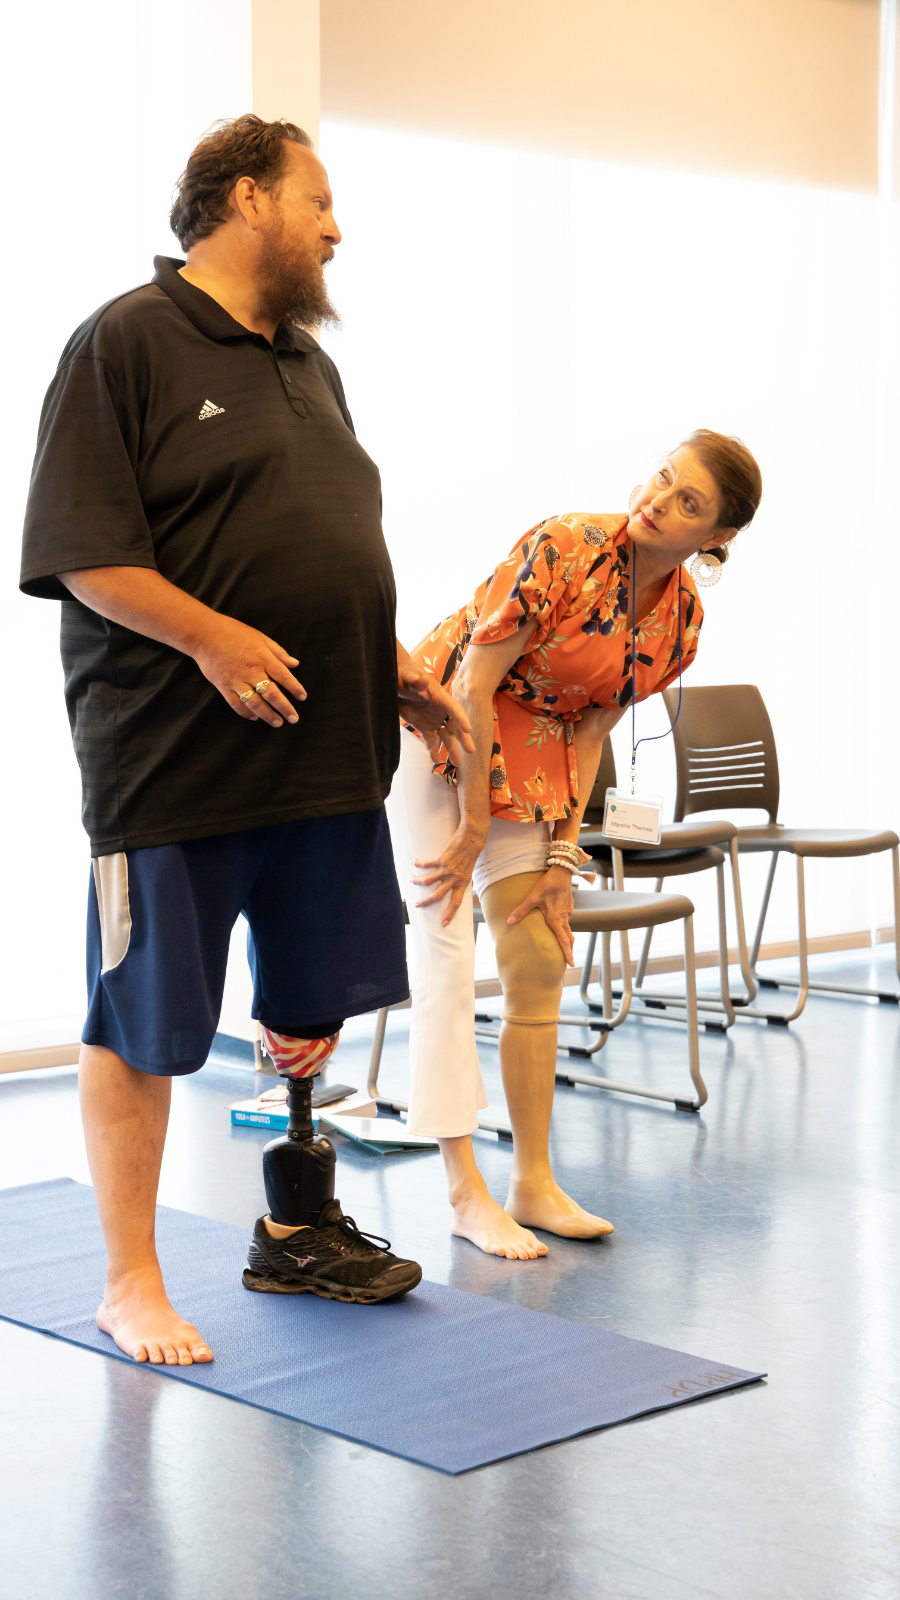 Teaching students with disabilities, teaching to all students, yoga variations, yoga for accessibility and inclusiveness